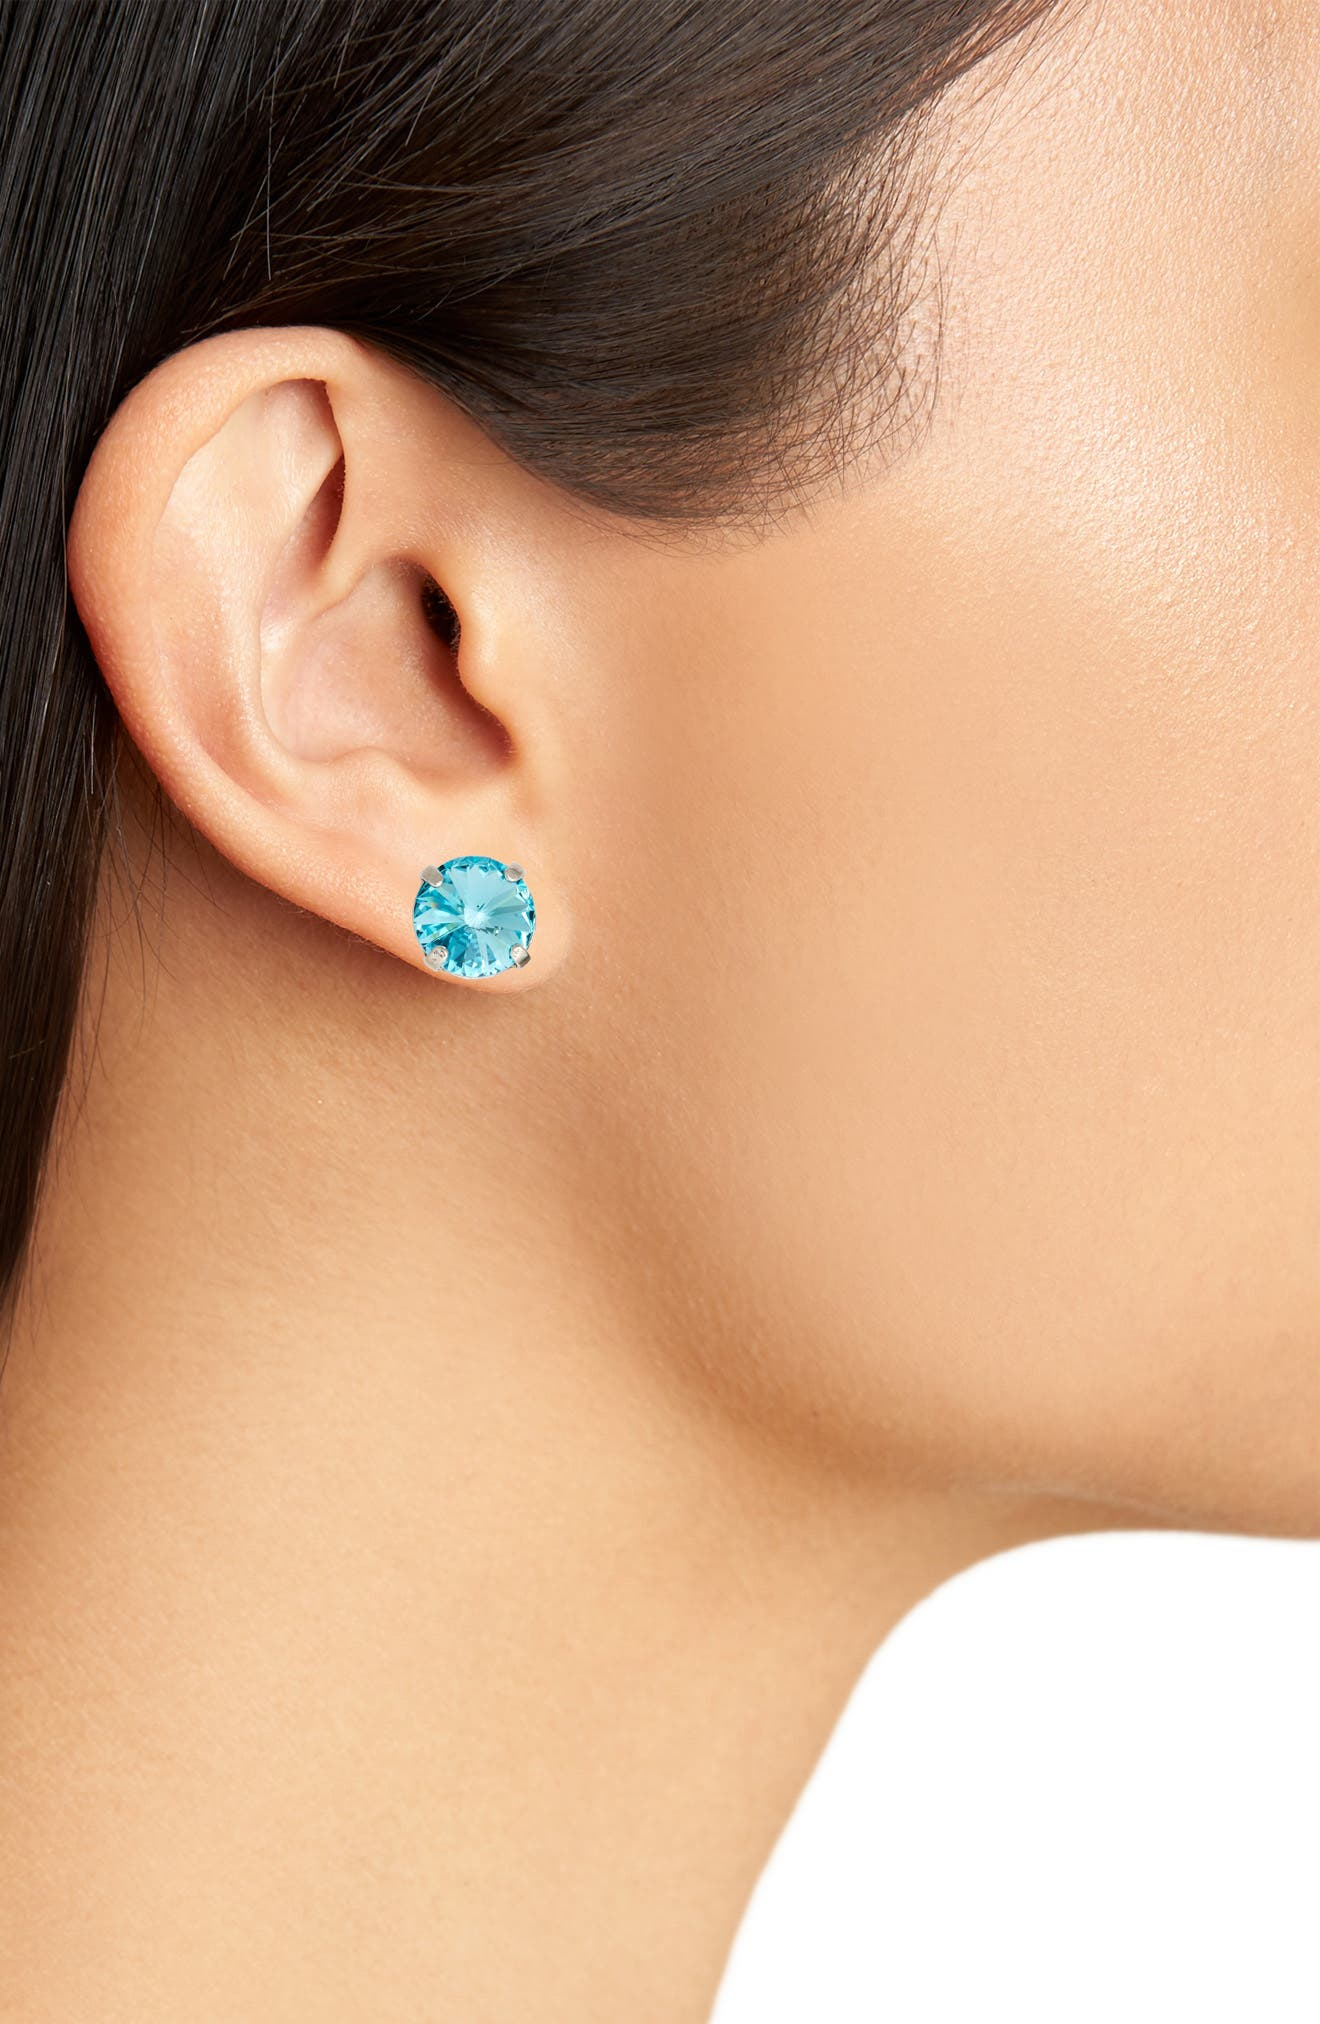 Radiant Rivoli Earrings,                             Alternate thumbnail 2, color,                             400